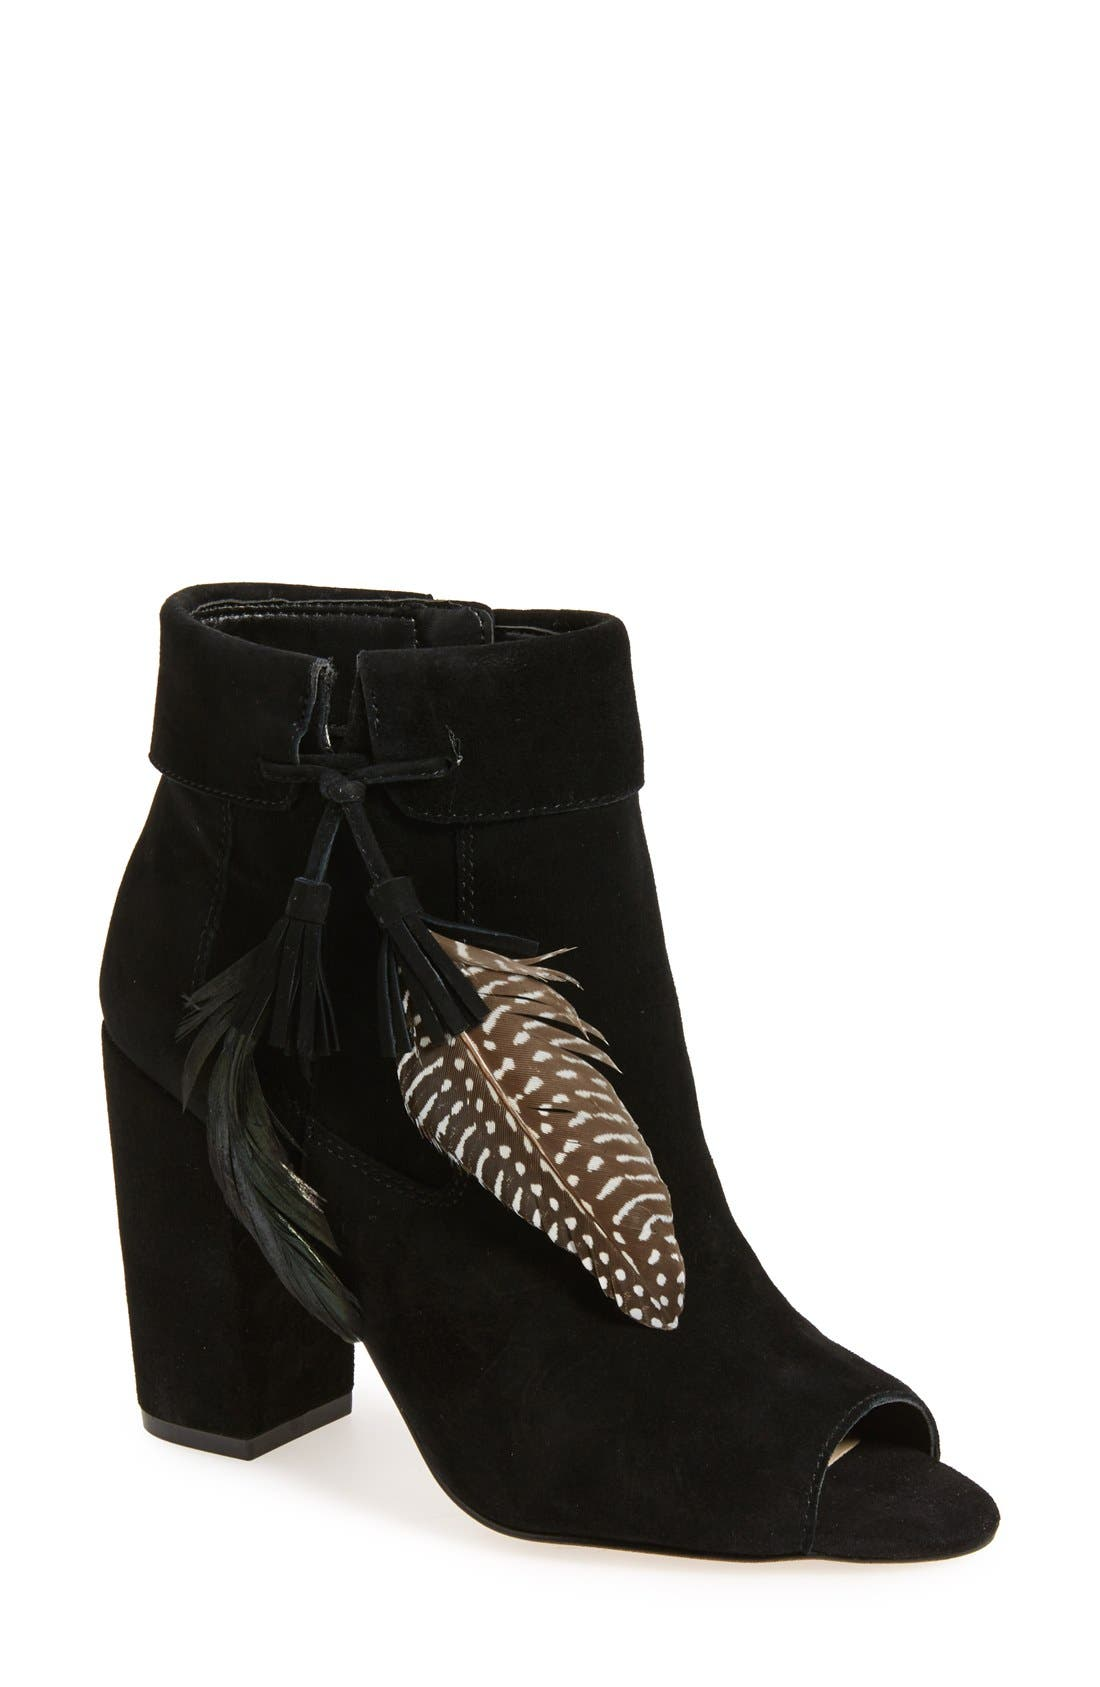 Main Image - Jessica Simpson 'Kailey' Feather Charm Peep Toe Bootie (Women)